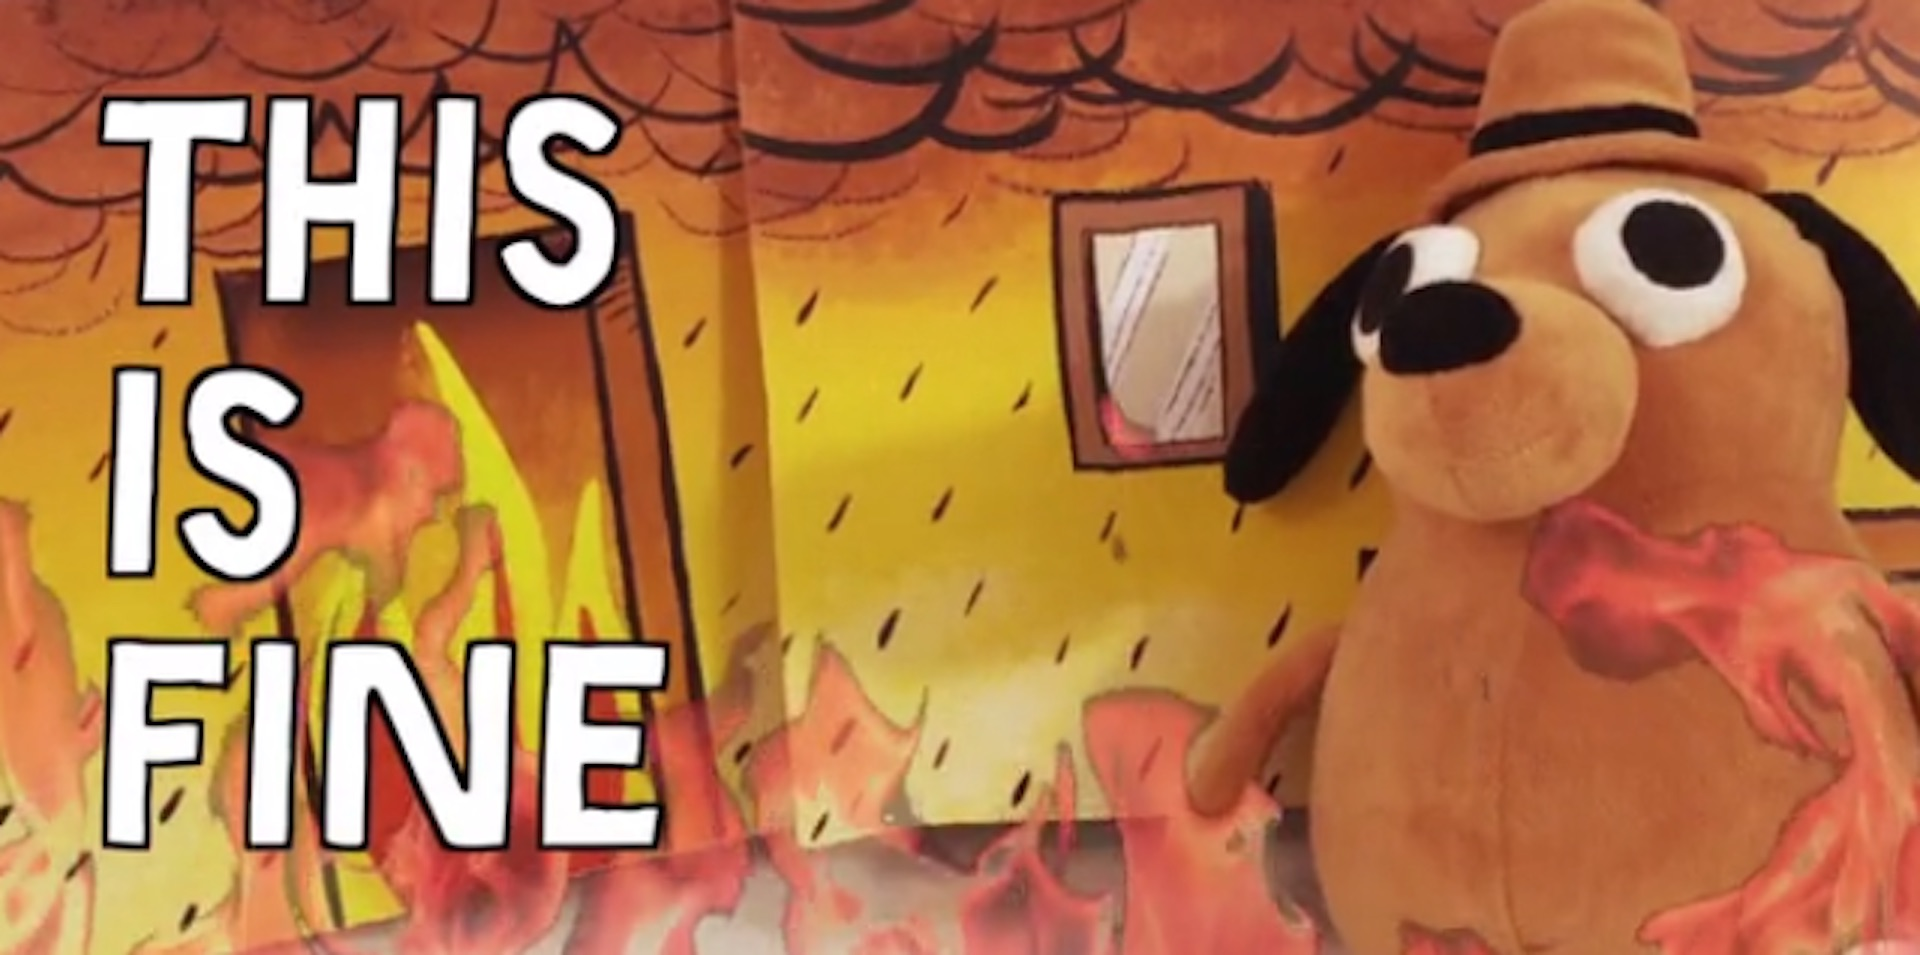 This Is Fine Dog Stuffed Animal, This Is Fine Plush Dog By Kc Green Kickstarter